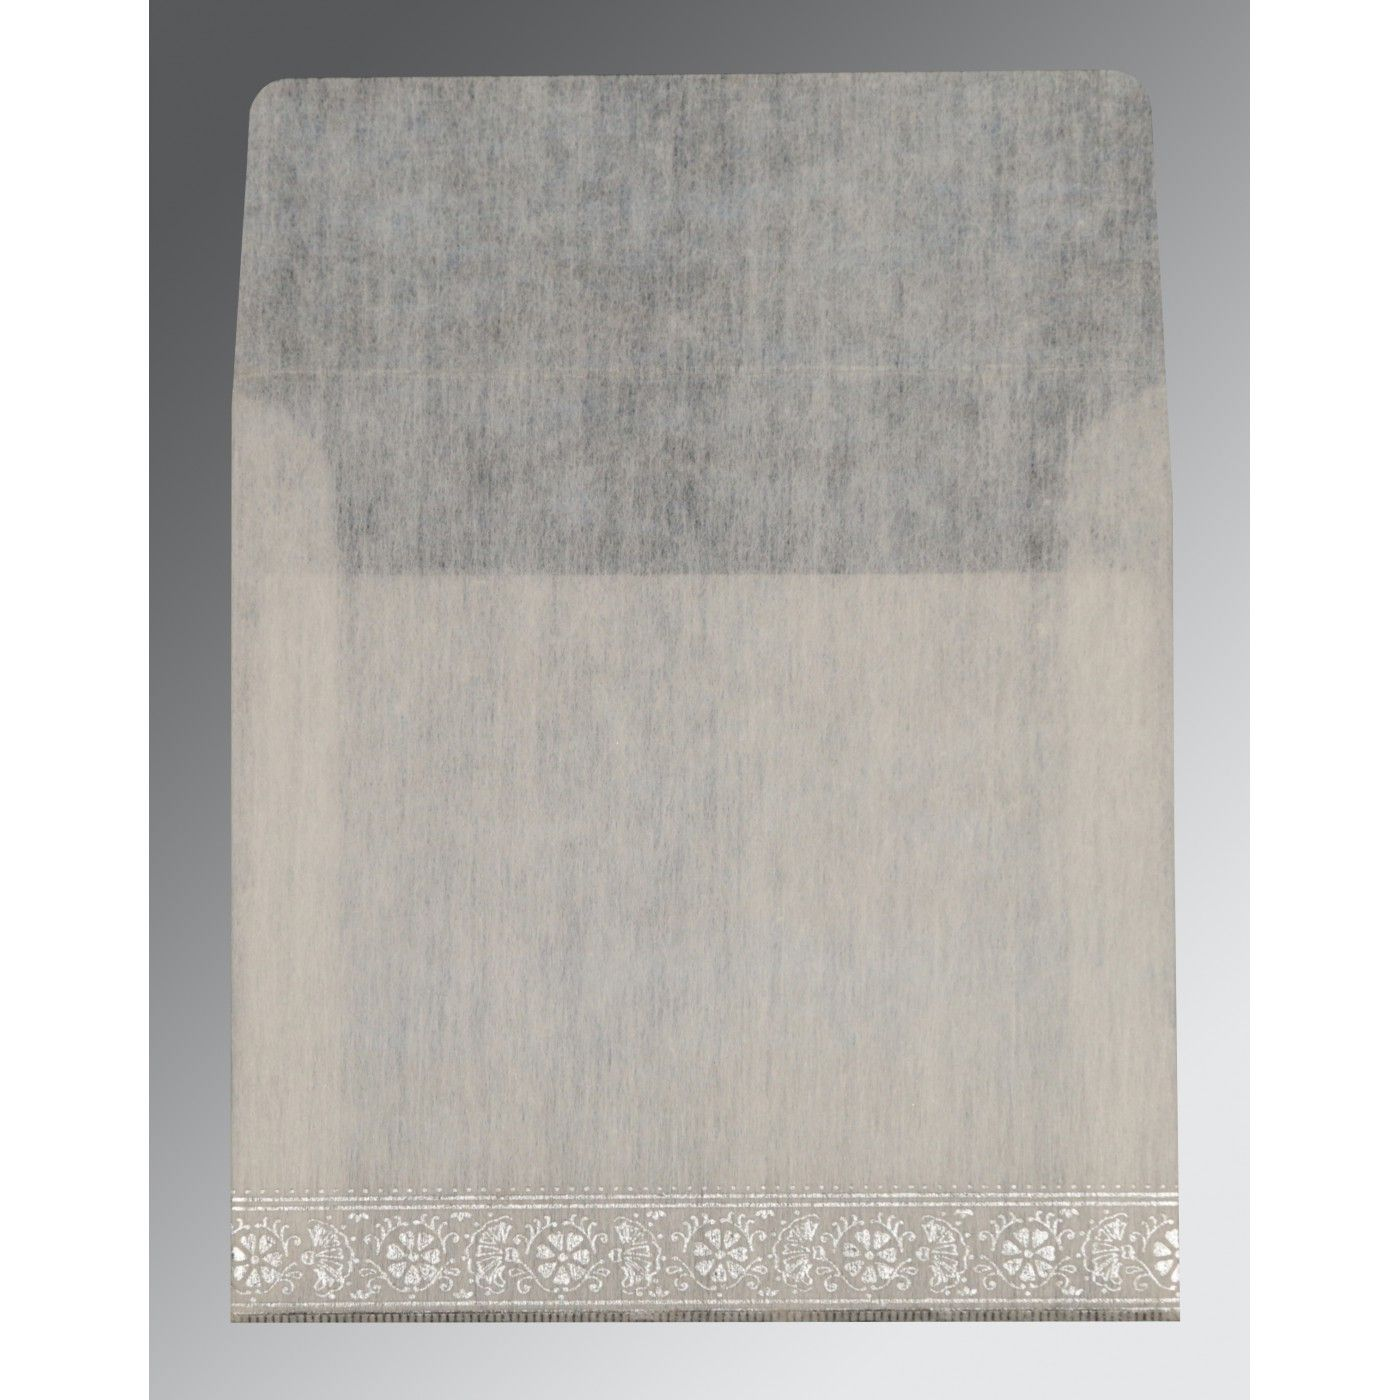 OFF-WHITE WOOLY FOIL STAMPED WEDDING CARD : CD-8242P - IndianWeddingCards